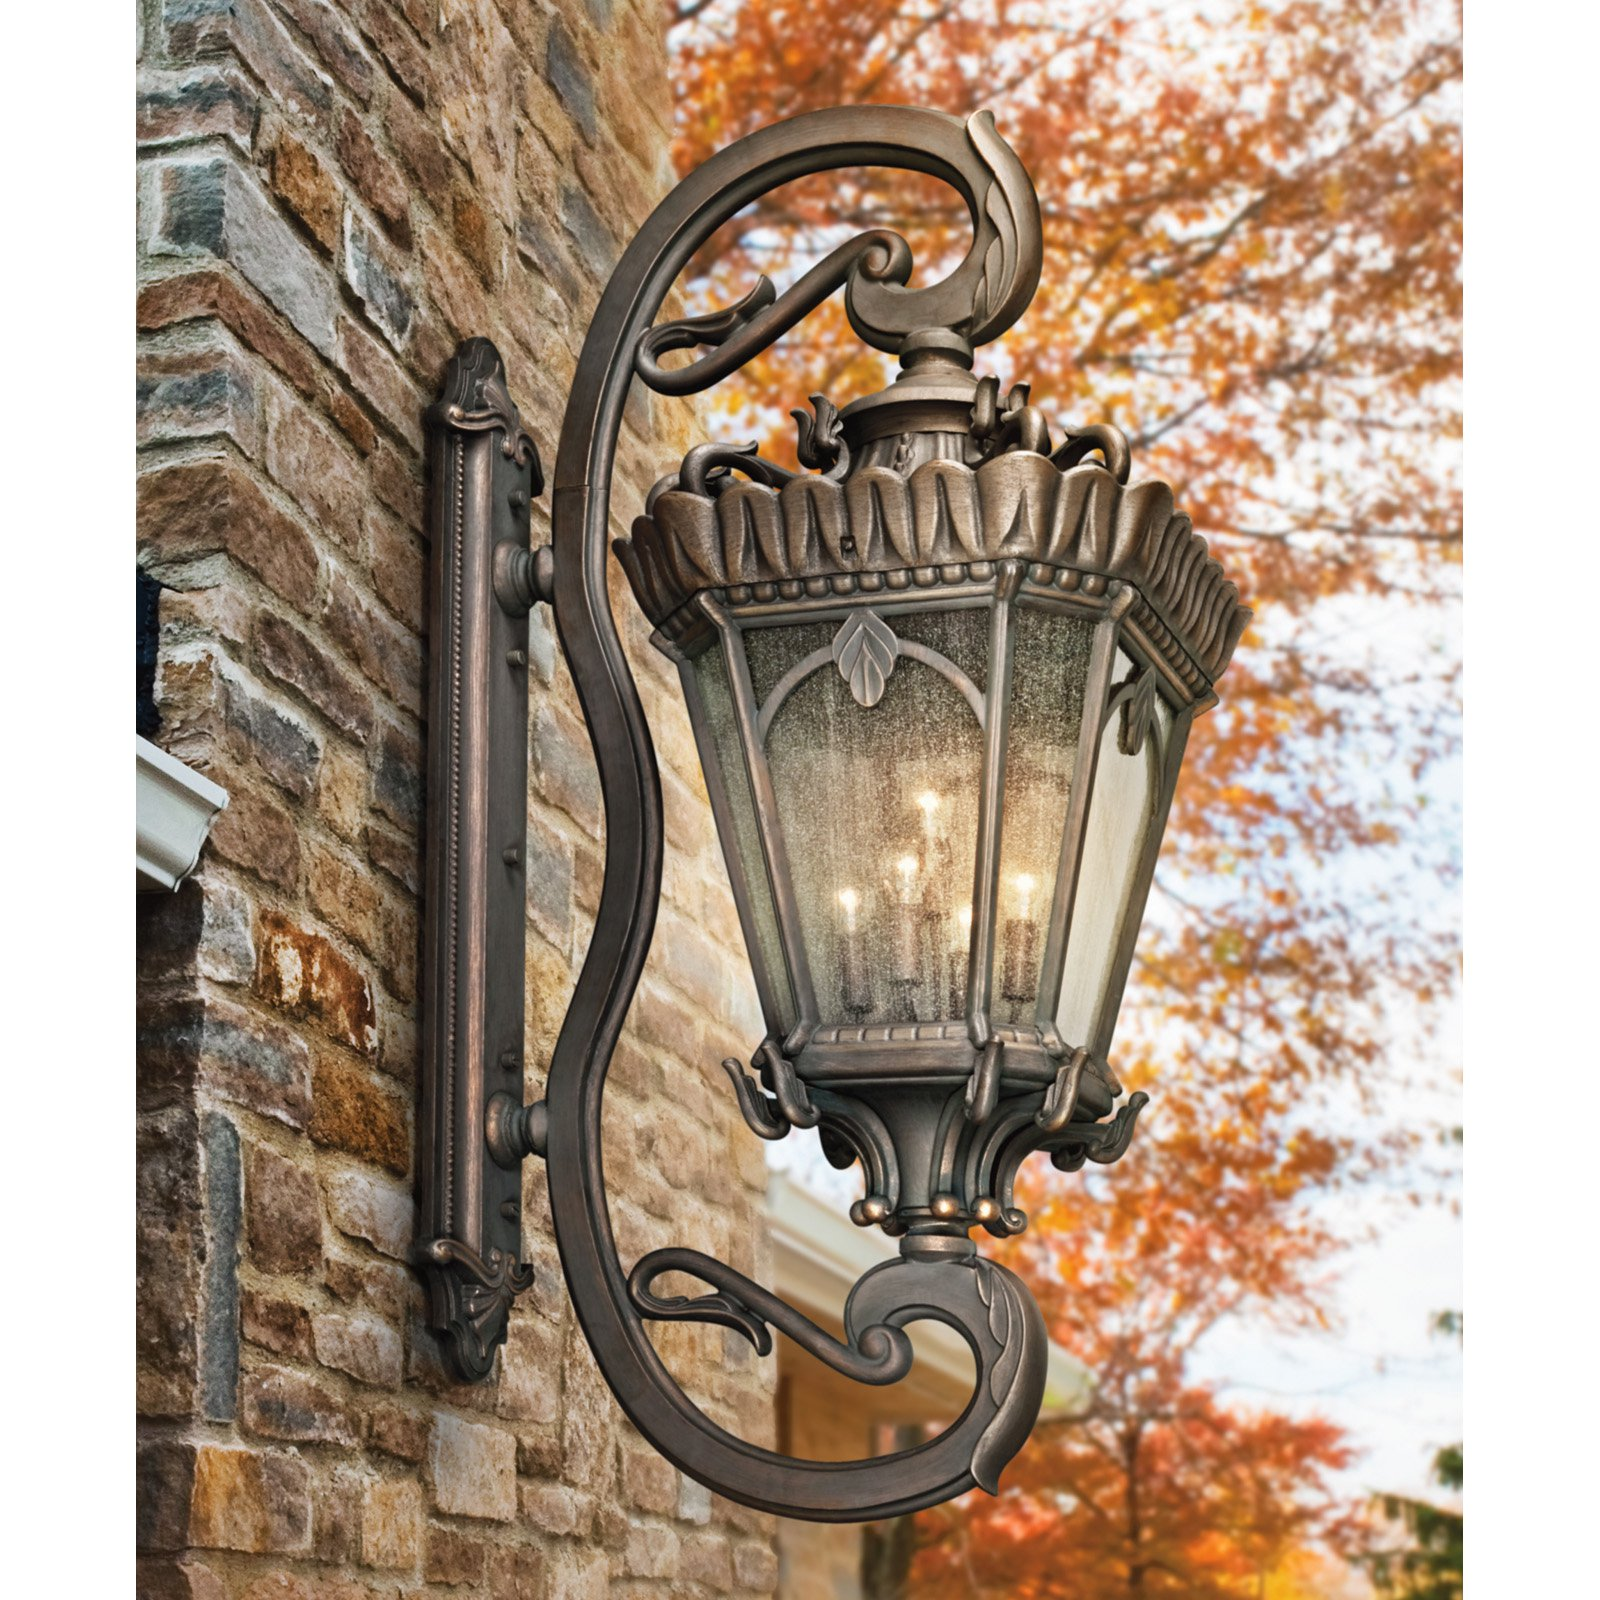 Kichler Tournai 9362 Outdoor Wall Lantern - 25.5 in.